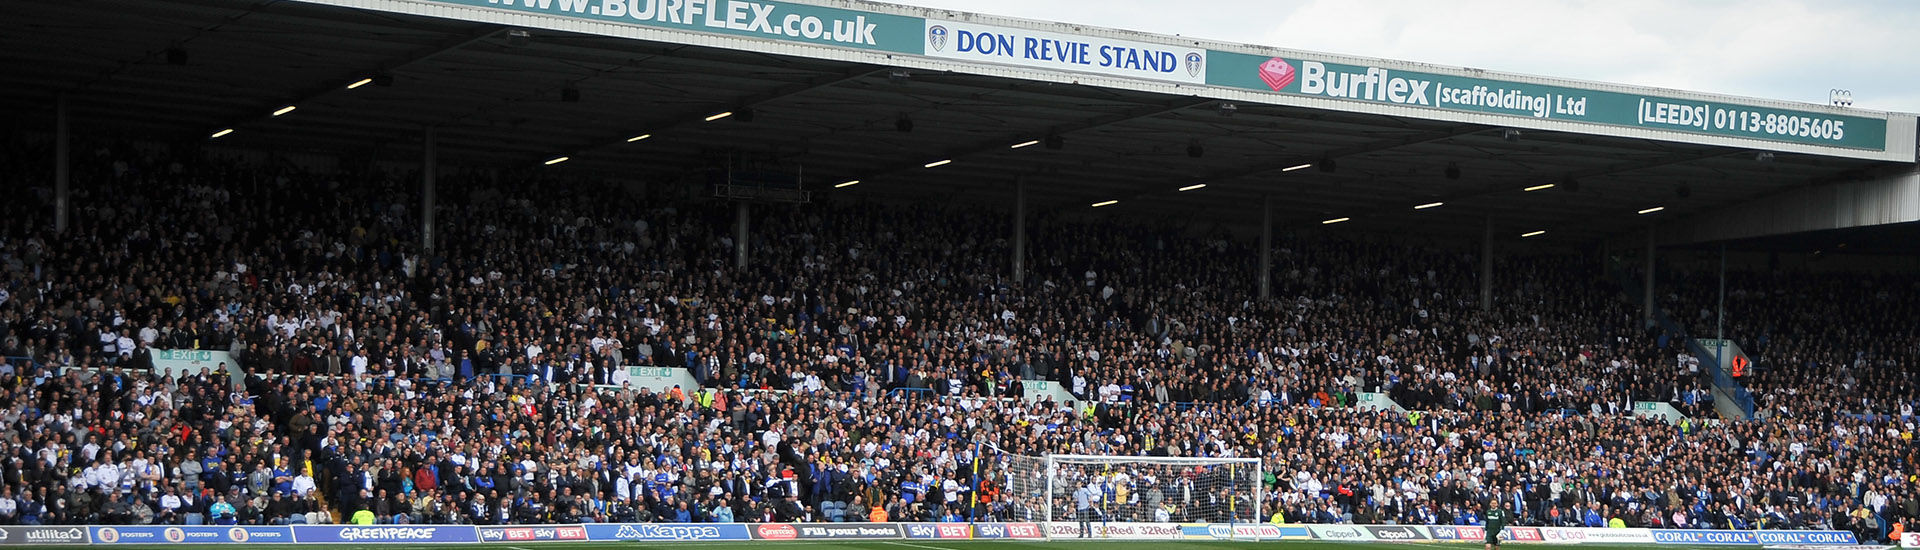 BEAMBACK: WATCH THE MILLWALL GAME IN THE NORTH STAND